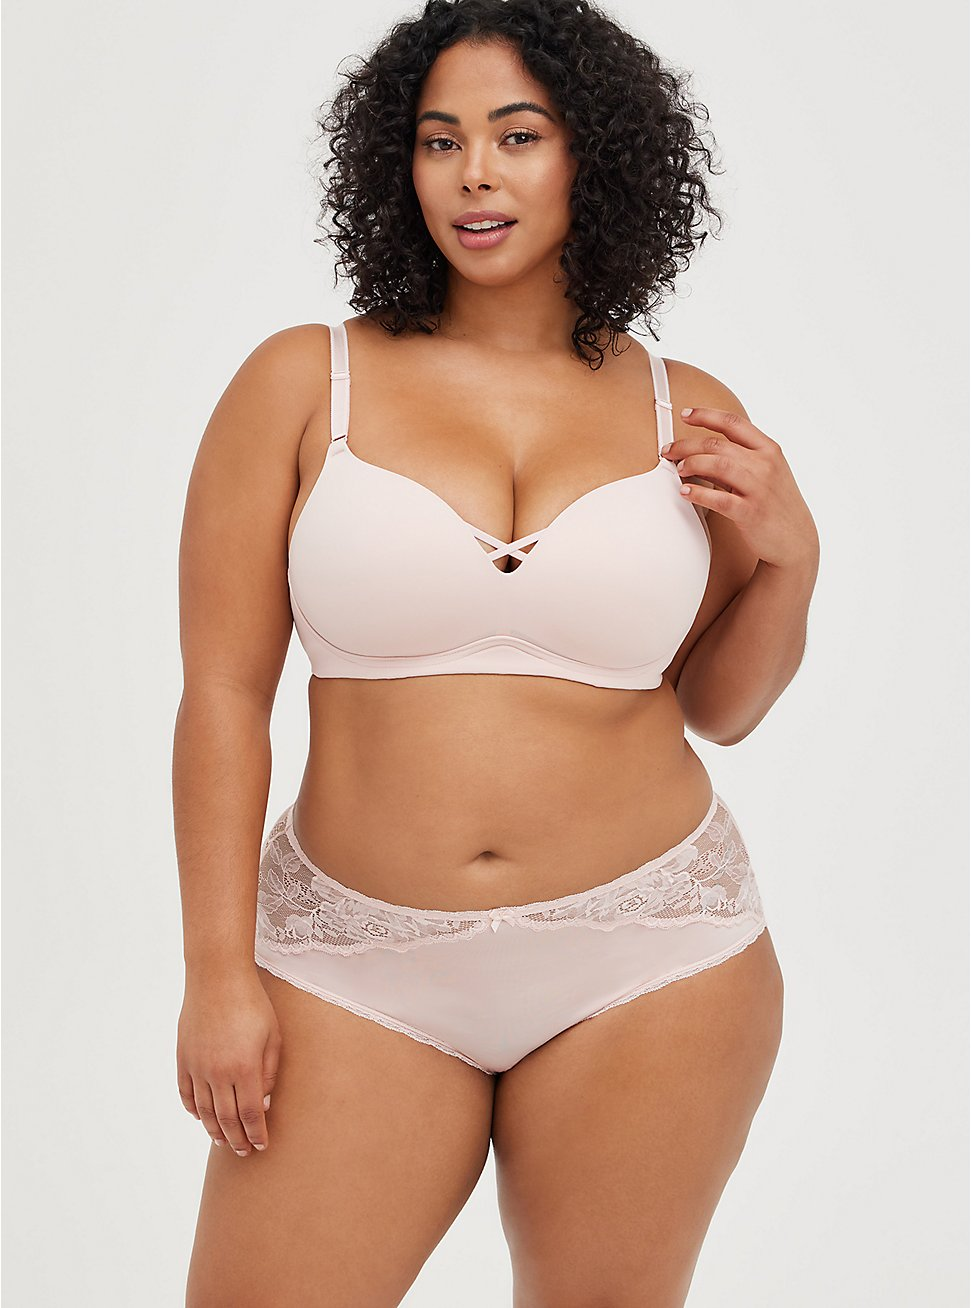 Plus Size Breast Cancer Awareness Push-Up Wirefree Bra - Pink with 360° Back Smoothing™, LOTUS PINK, hi-res